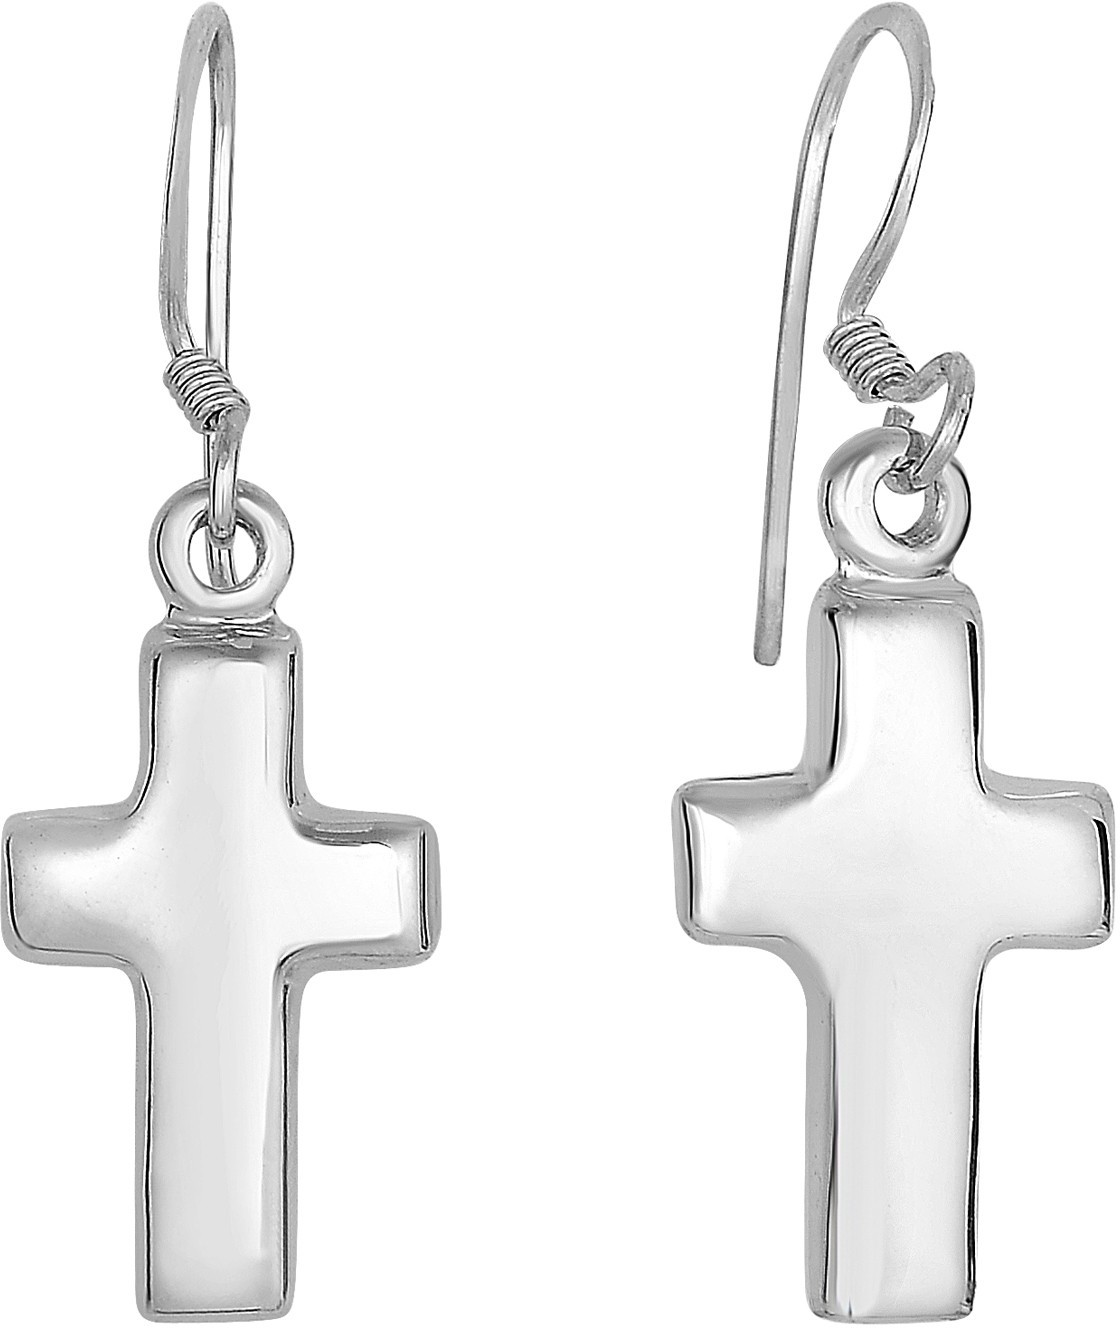 "Silver Rhodium Plated 7x15mm (0.28""x0.59"") Shiny Cross Dangle Earrings"